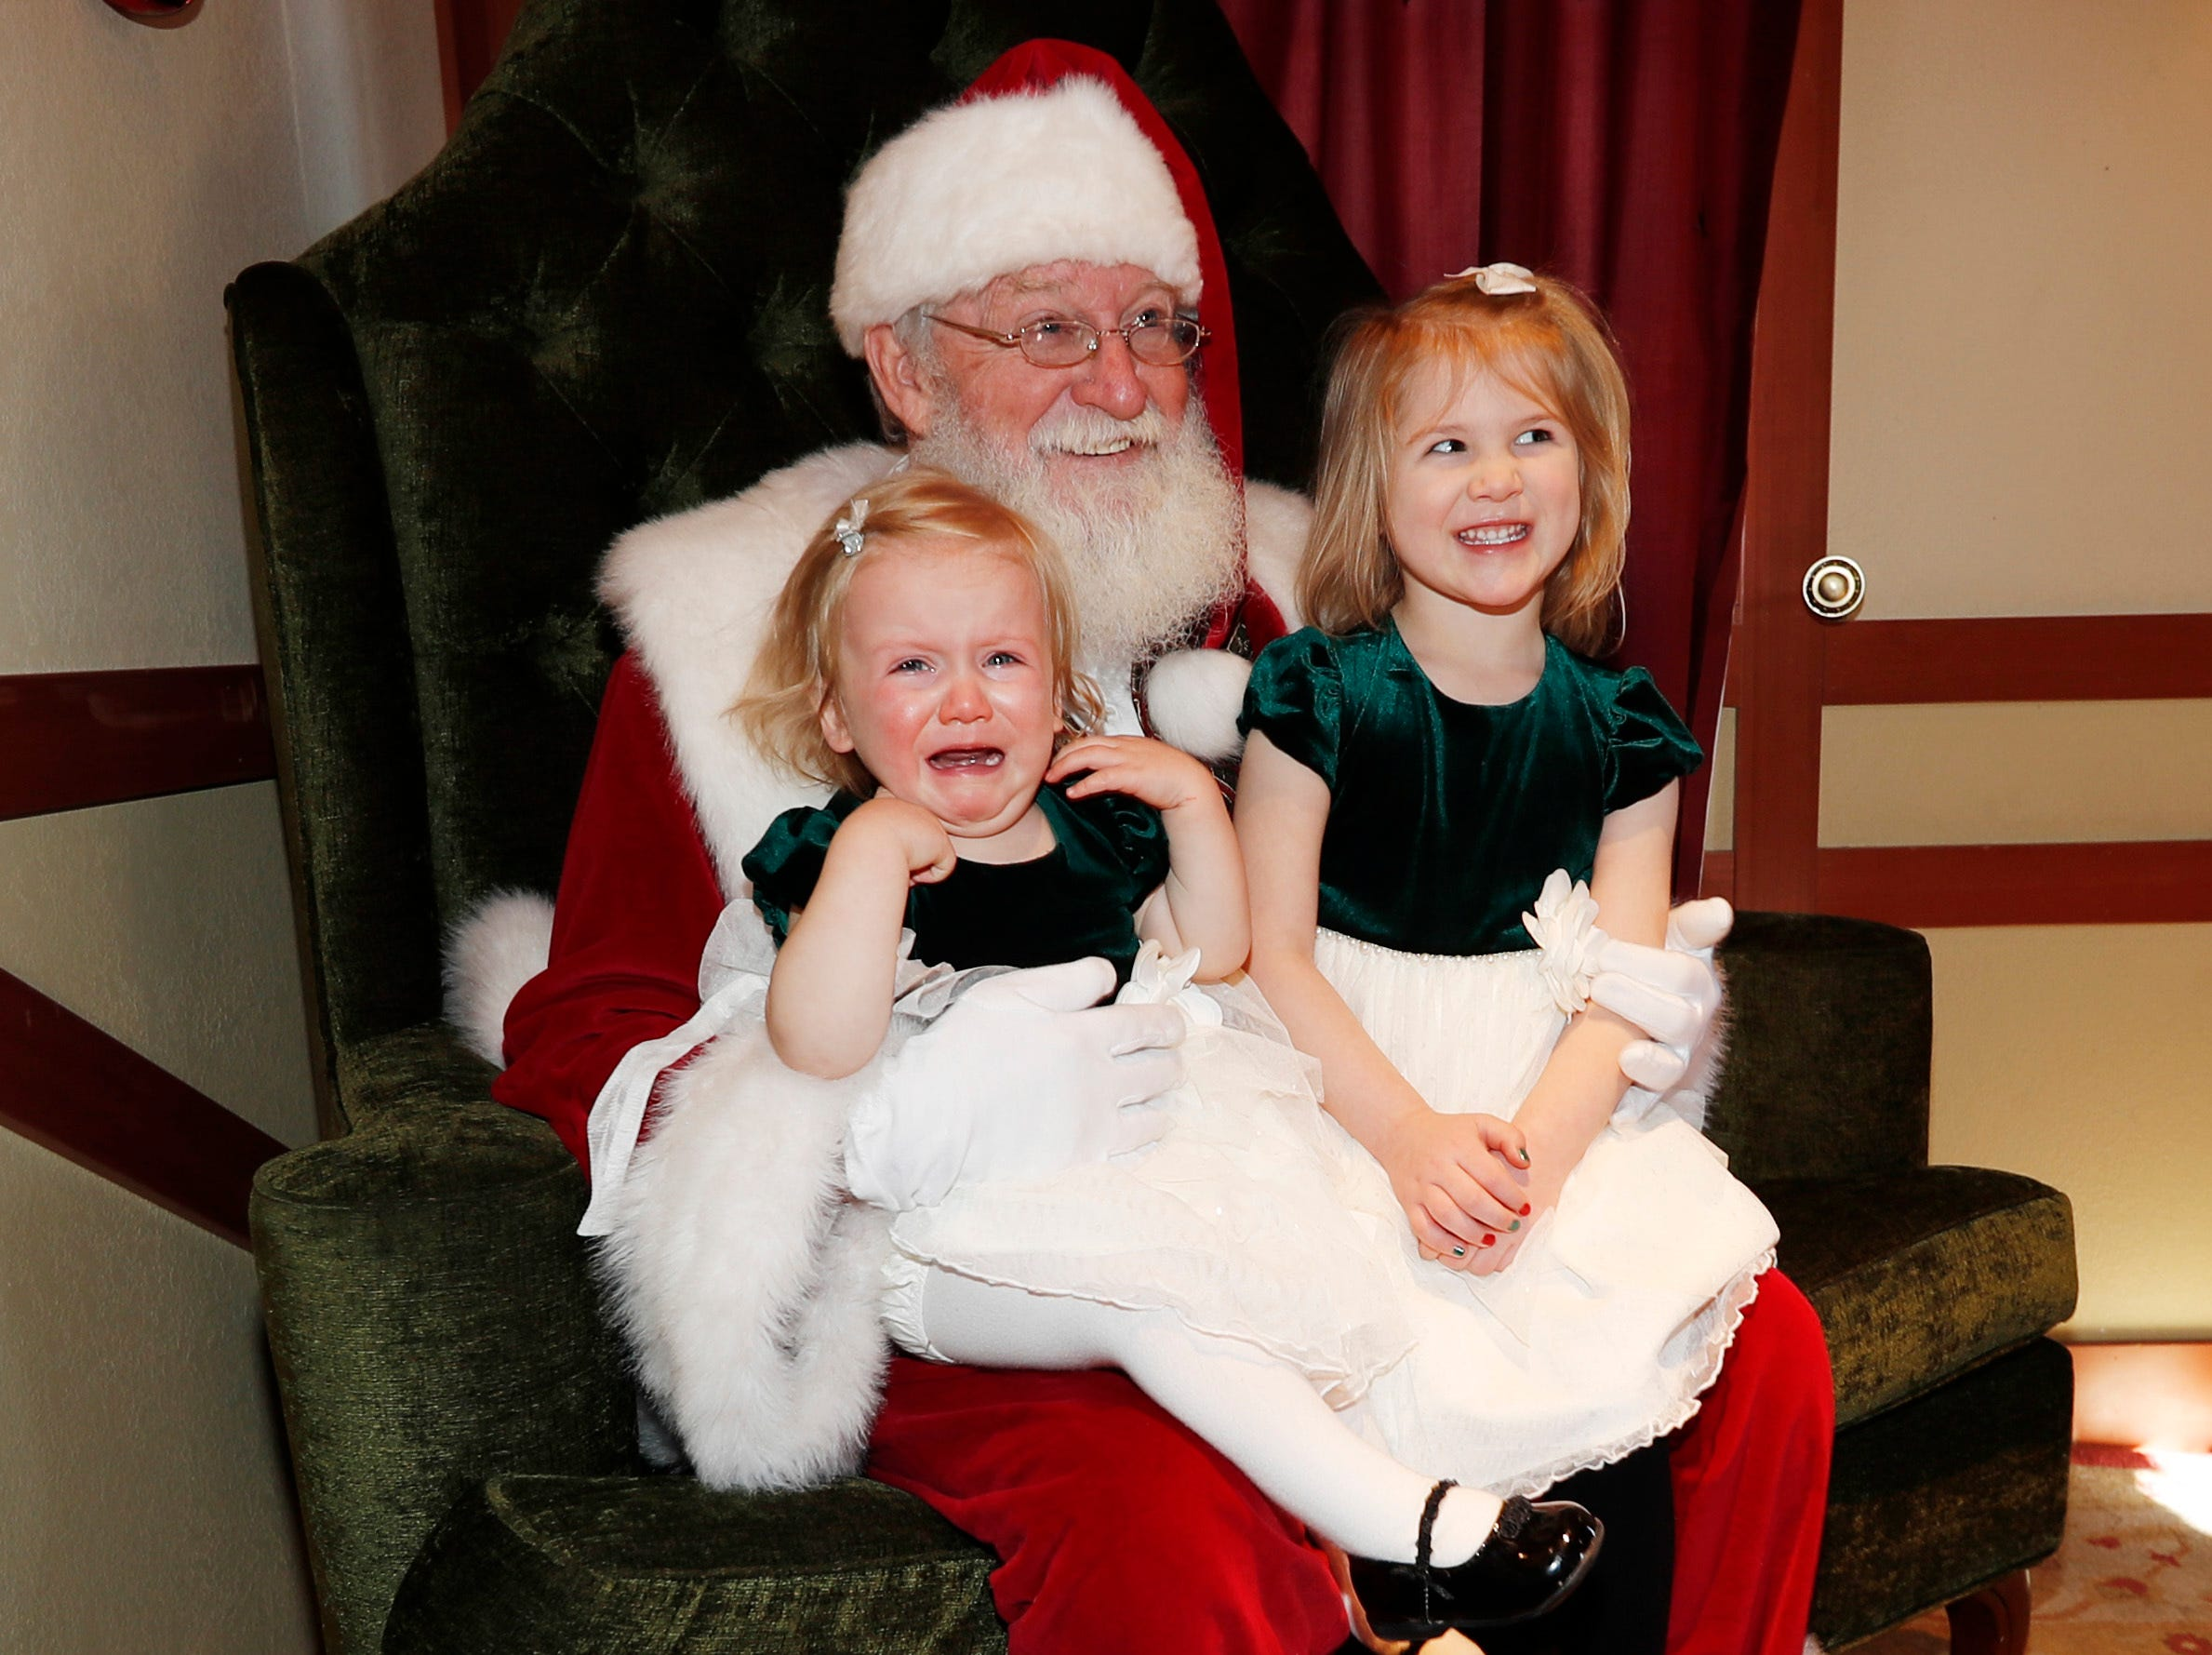 Eighteen-month-old Briell Digiacom of Lone Tree, Colo., expresses her dislike of posing for a photograph with Santa Claus with her 4-year-old sister, Keri, as last-minute shoppers finish up their Christmas gift lists at the Outlet Malls in Castle Rock Monday, Dec. 24, 2018, in Castle Rock, Colo. Retailers were offering ample discounts plus even more price cuts to those shoppers who ventured out with the holiday looming.